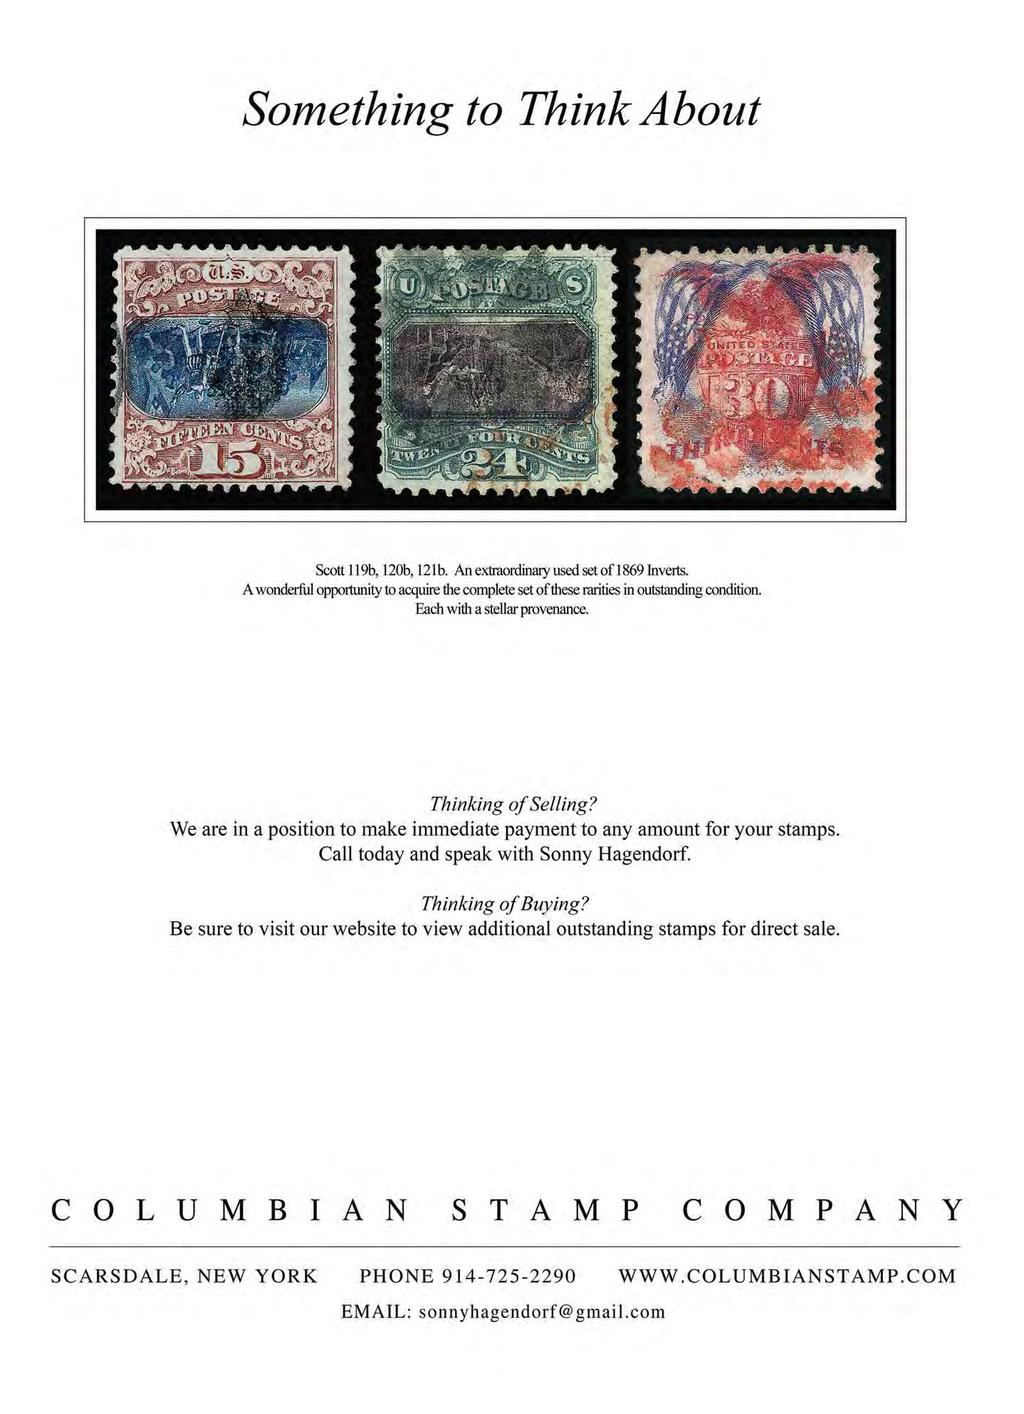 Realistic Armenia Armenian Alphabet Definitive Issue Letter Sh Full Sheet 15 Stamp Mnh Big Clearance Sale Asia